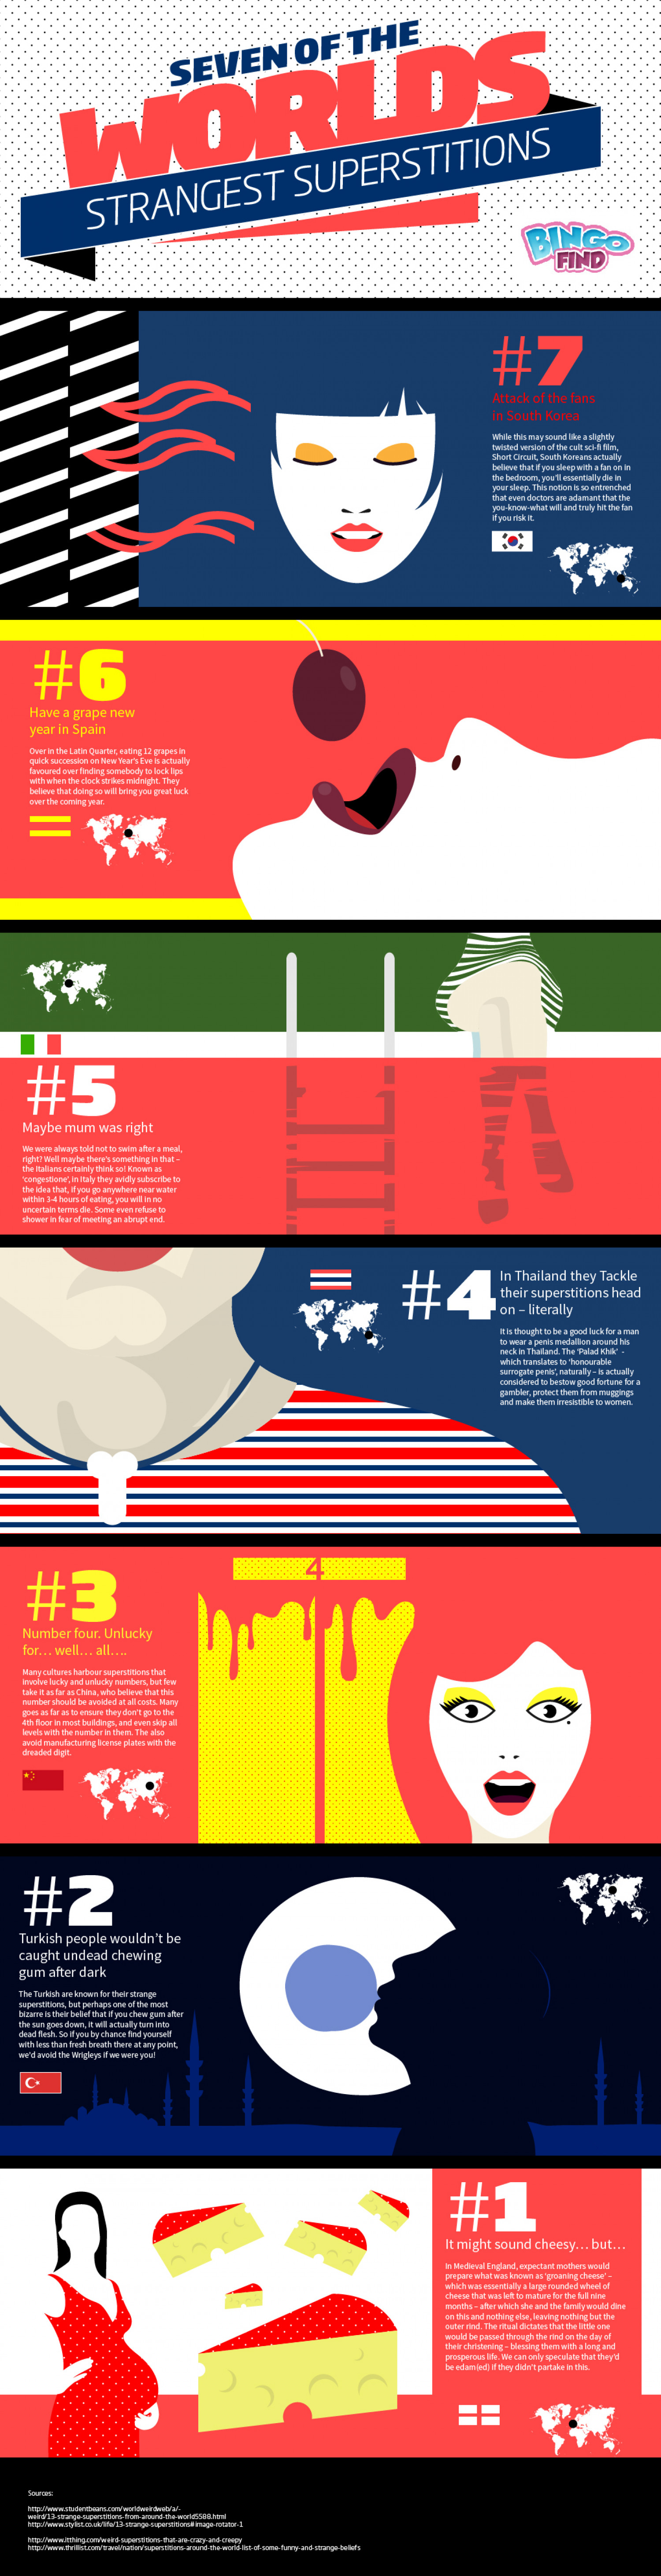 Seven of the Worlds Strangest Superstitions Infographic